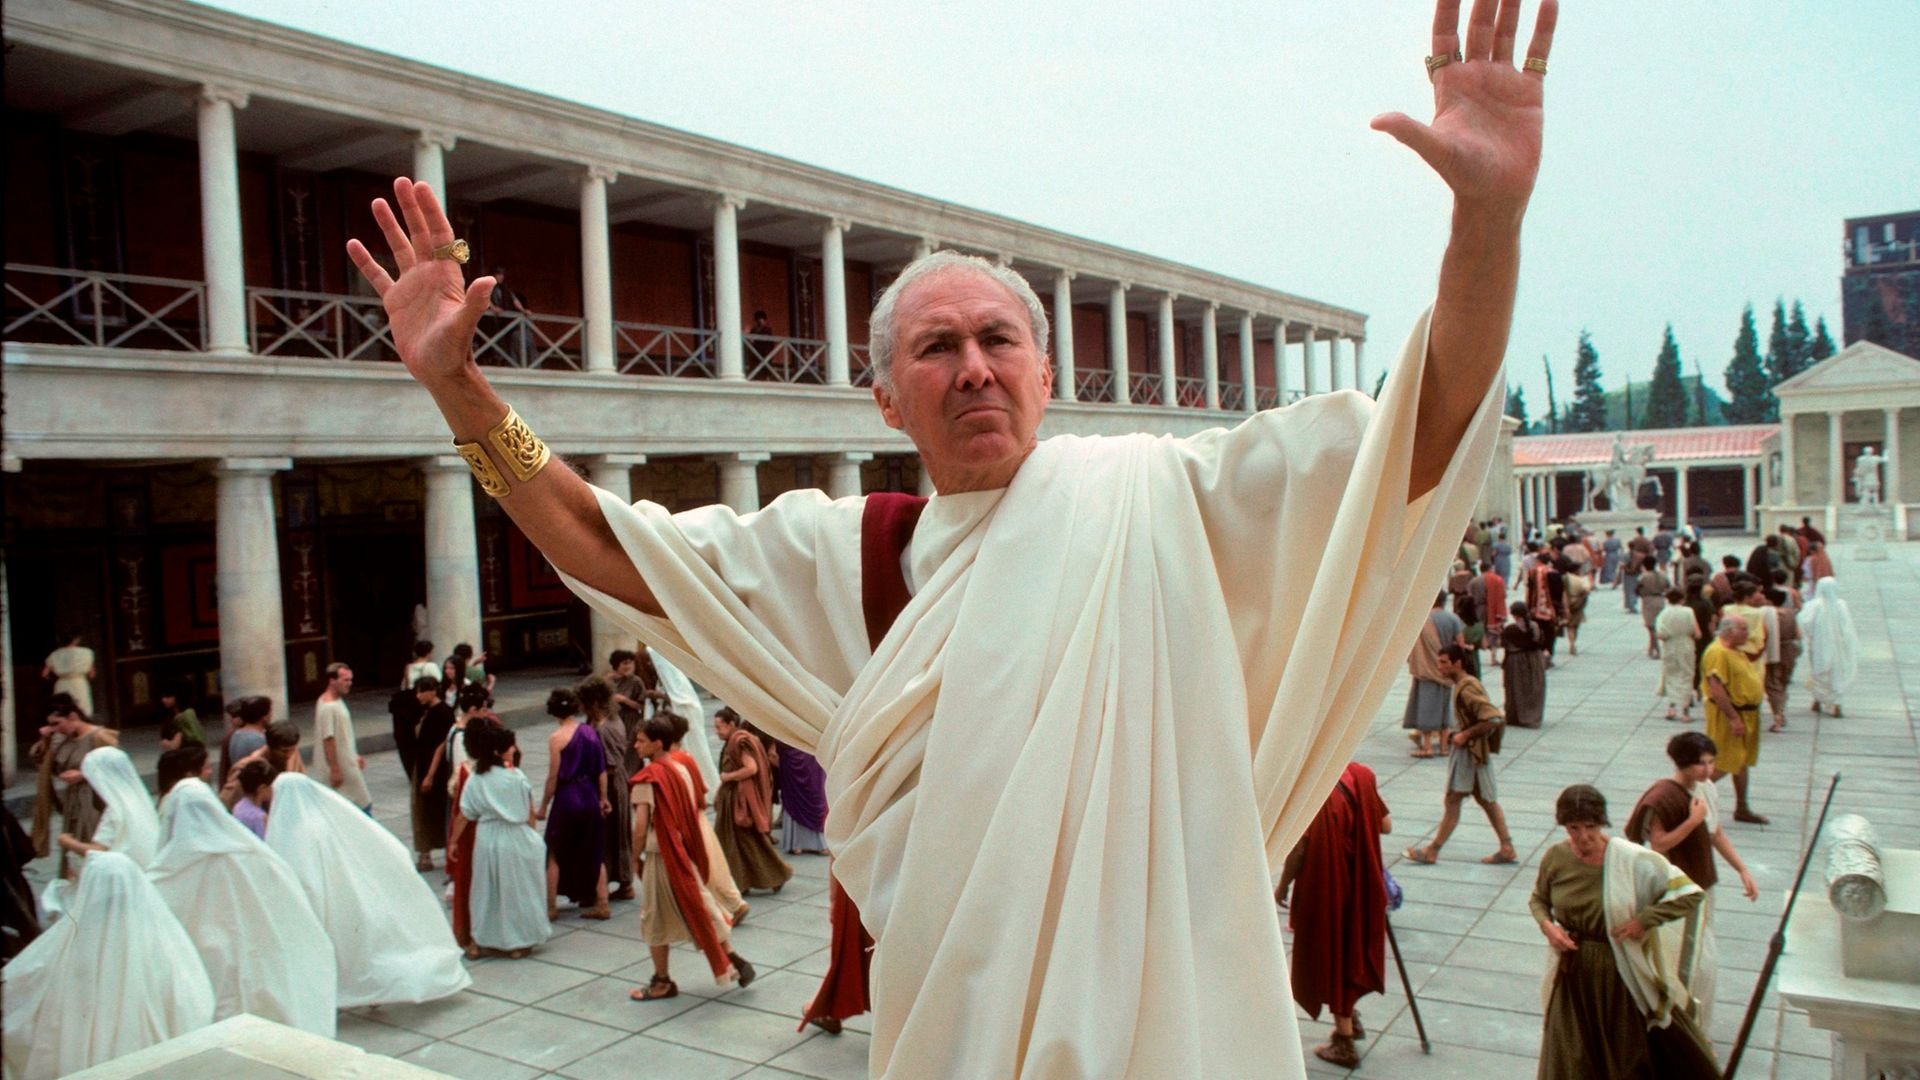 Anthony Quayle in the mini-series The Last Days of Pompeii - Credit: Walt Disney Television via Getty